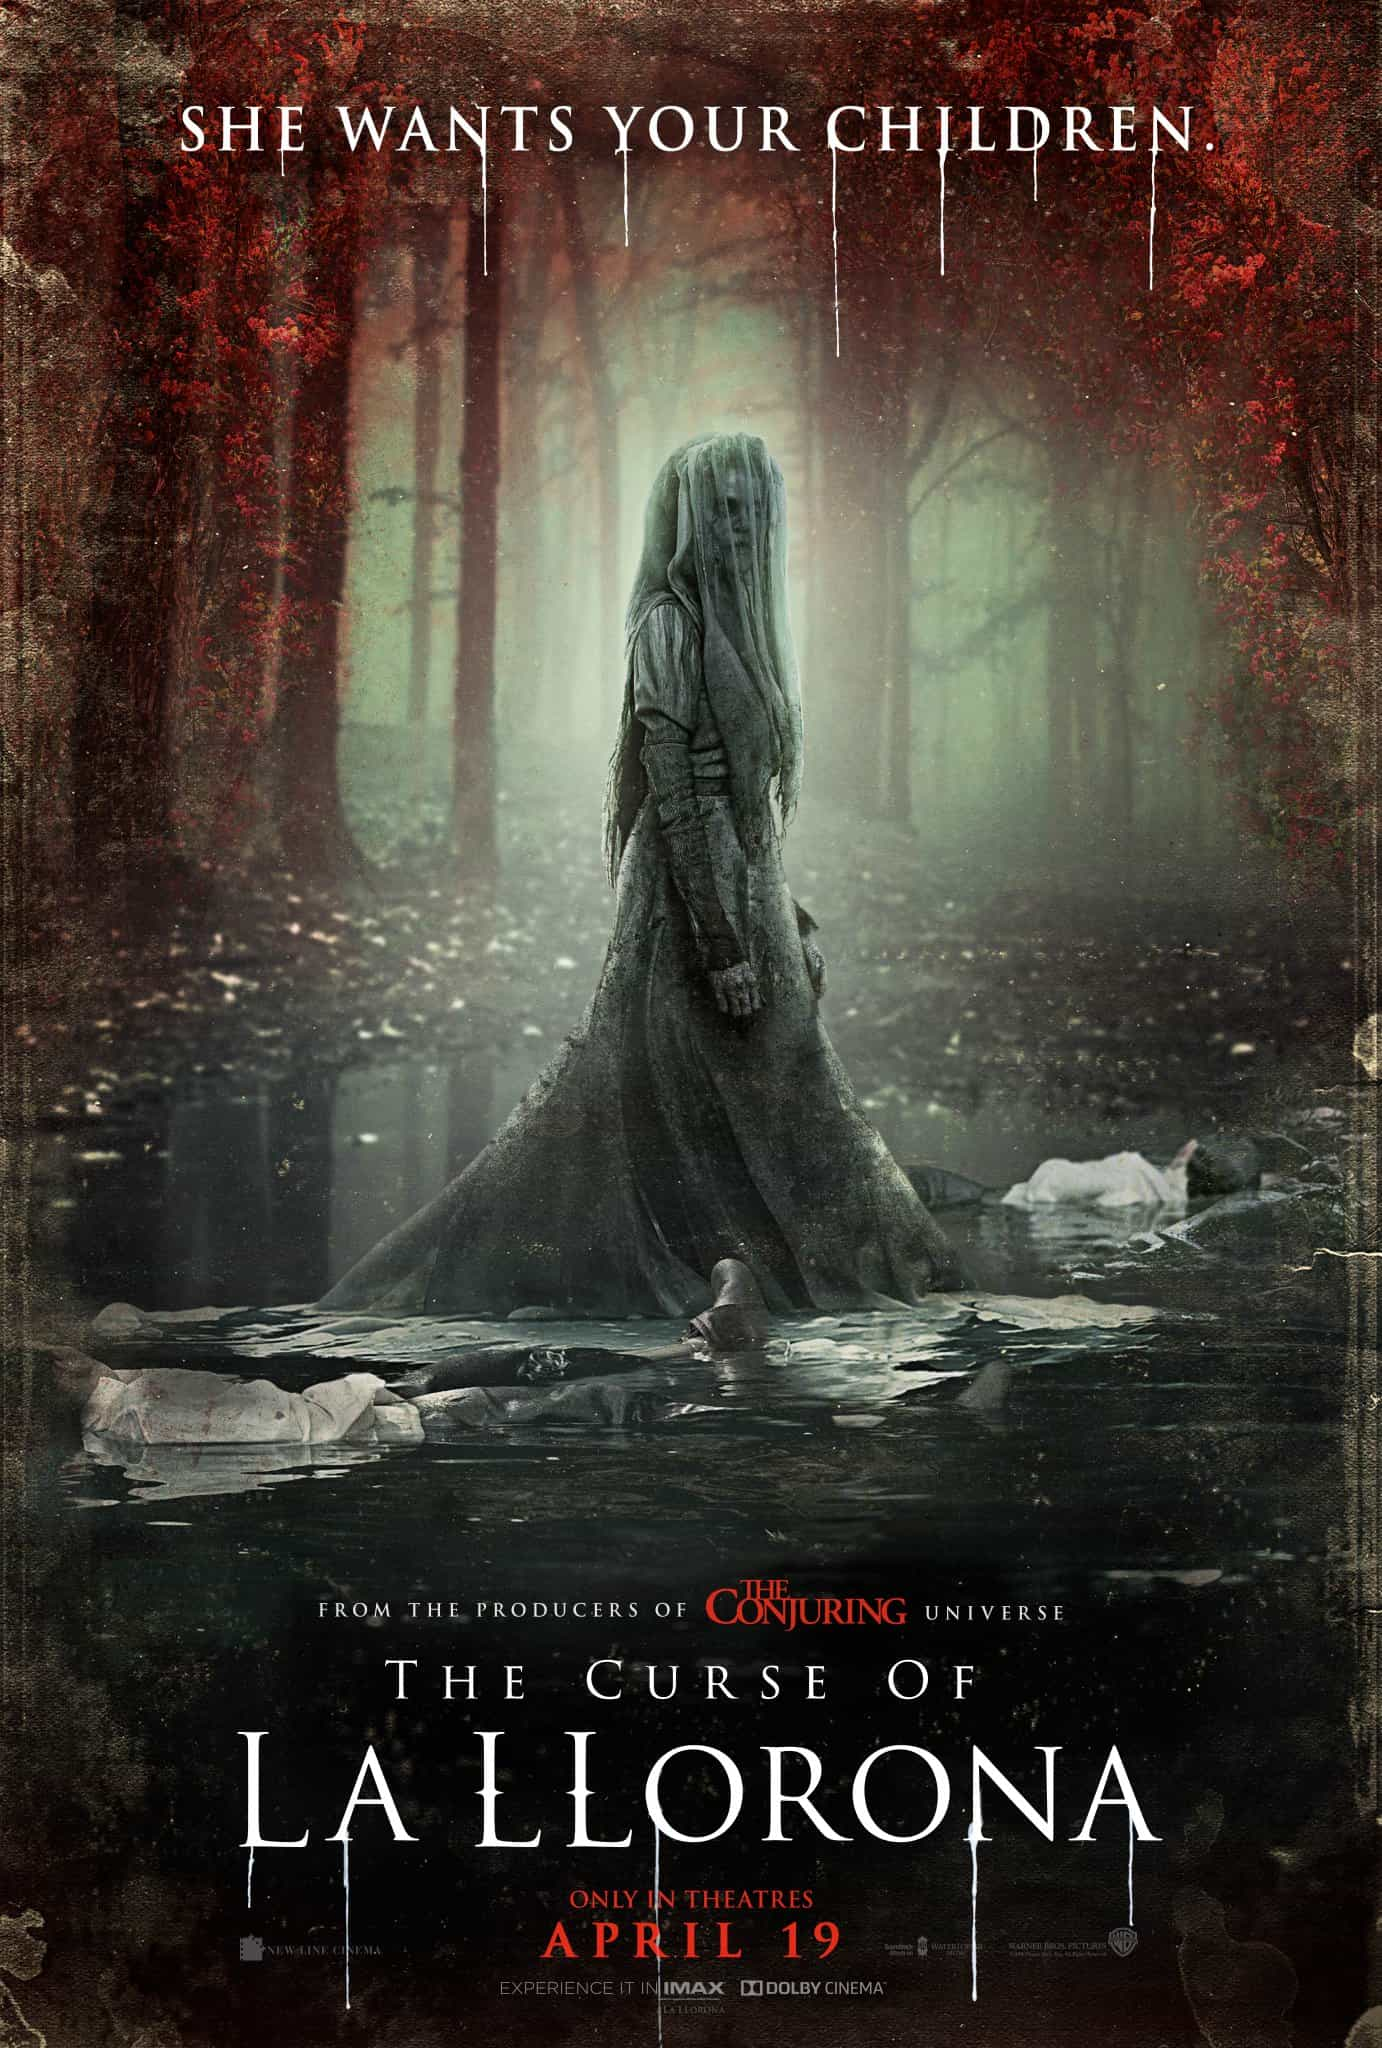 US Box Office Weekend 19 - 21 April 2019:  Audience go for the scares of The Curse Of La Llorona on its debut weekend